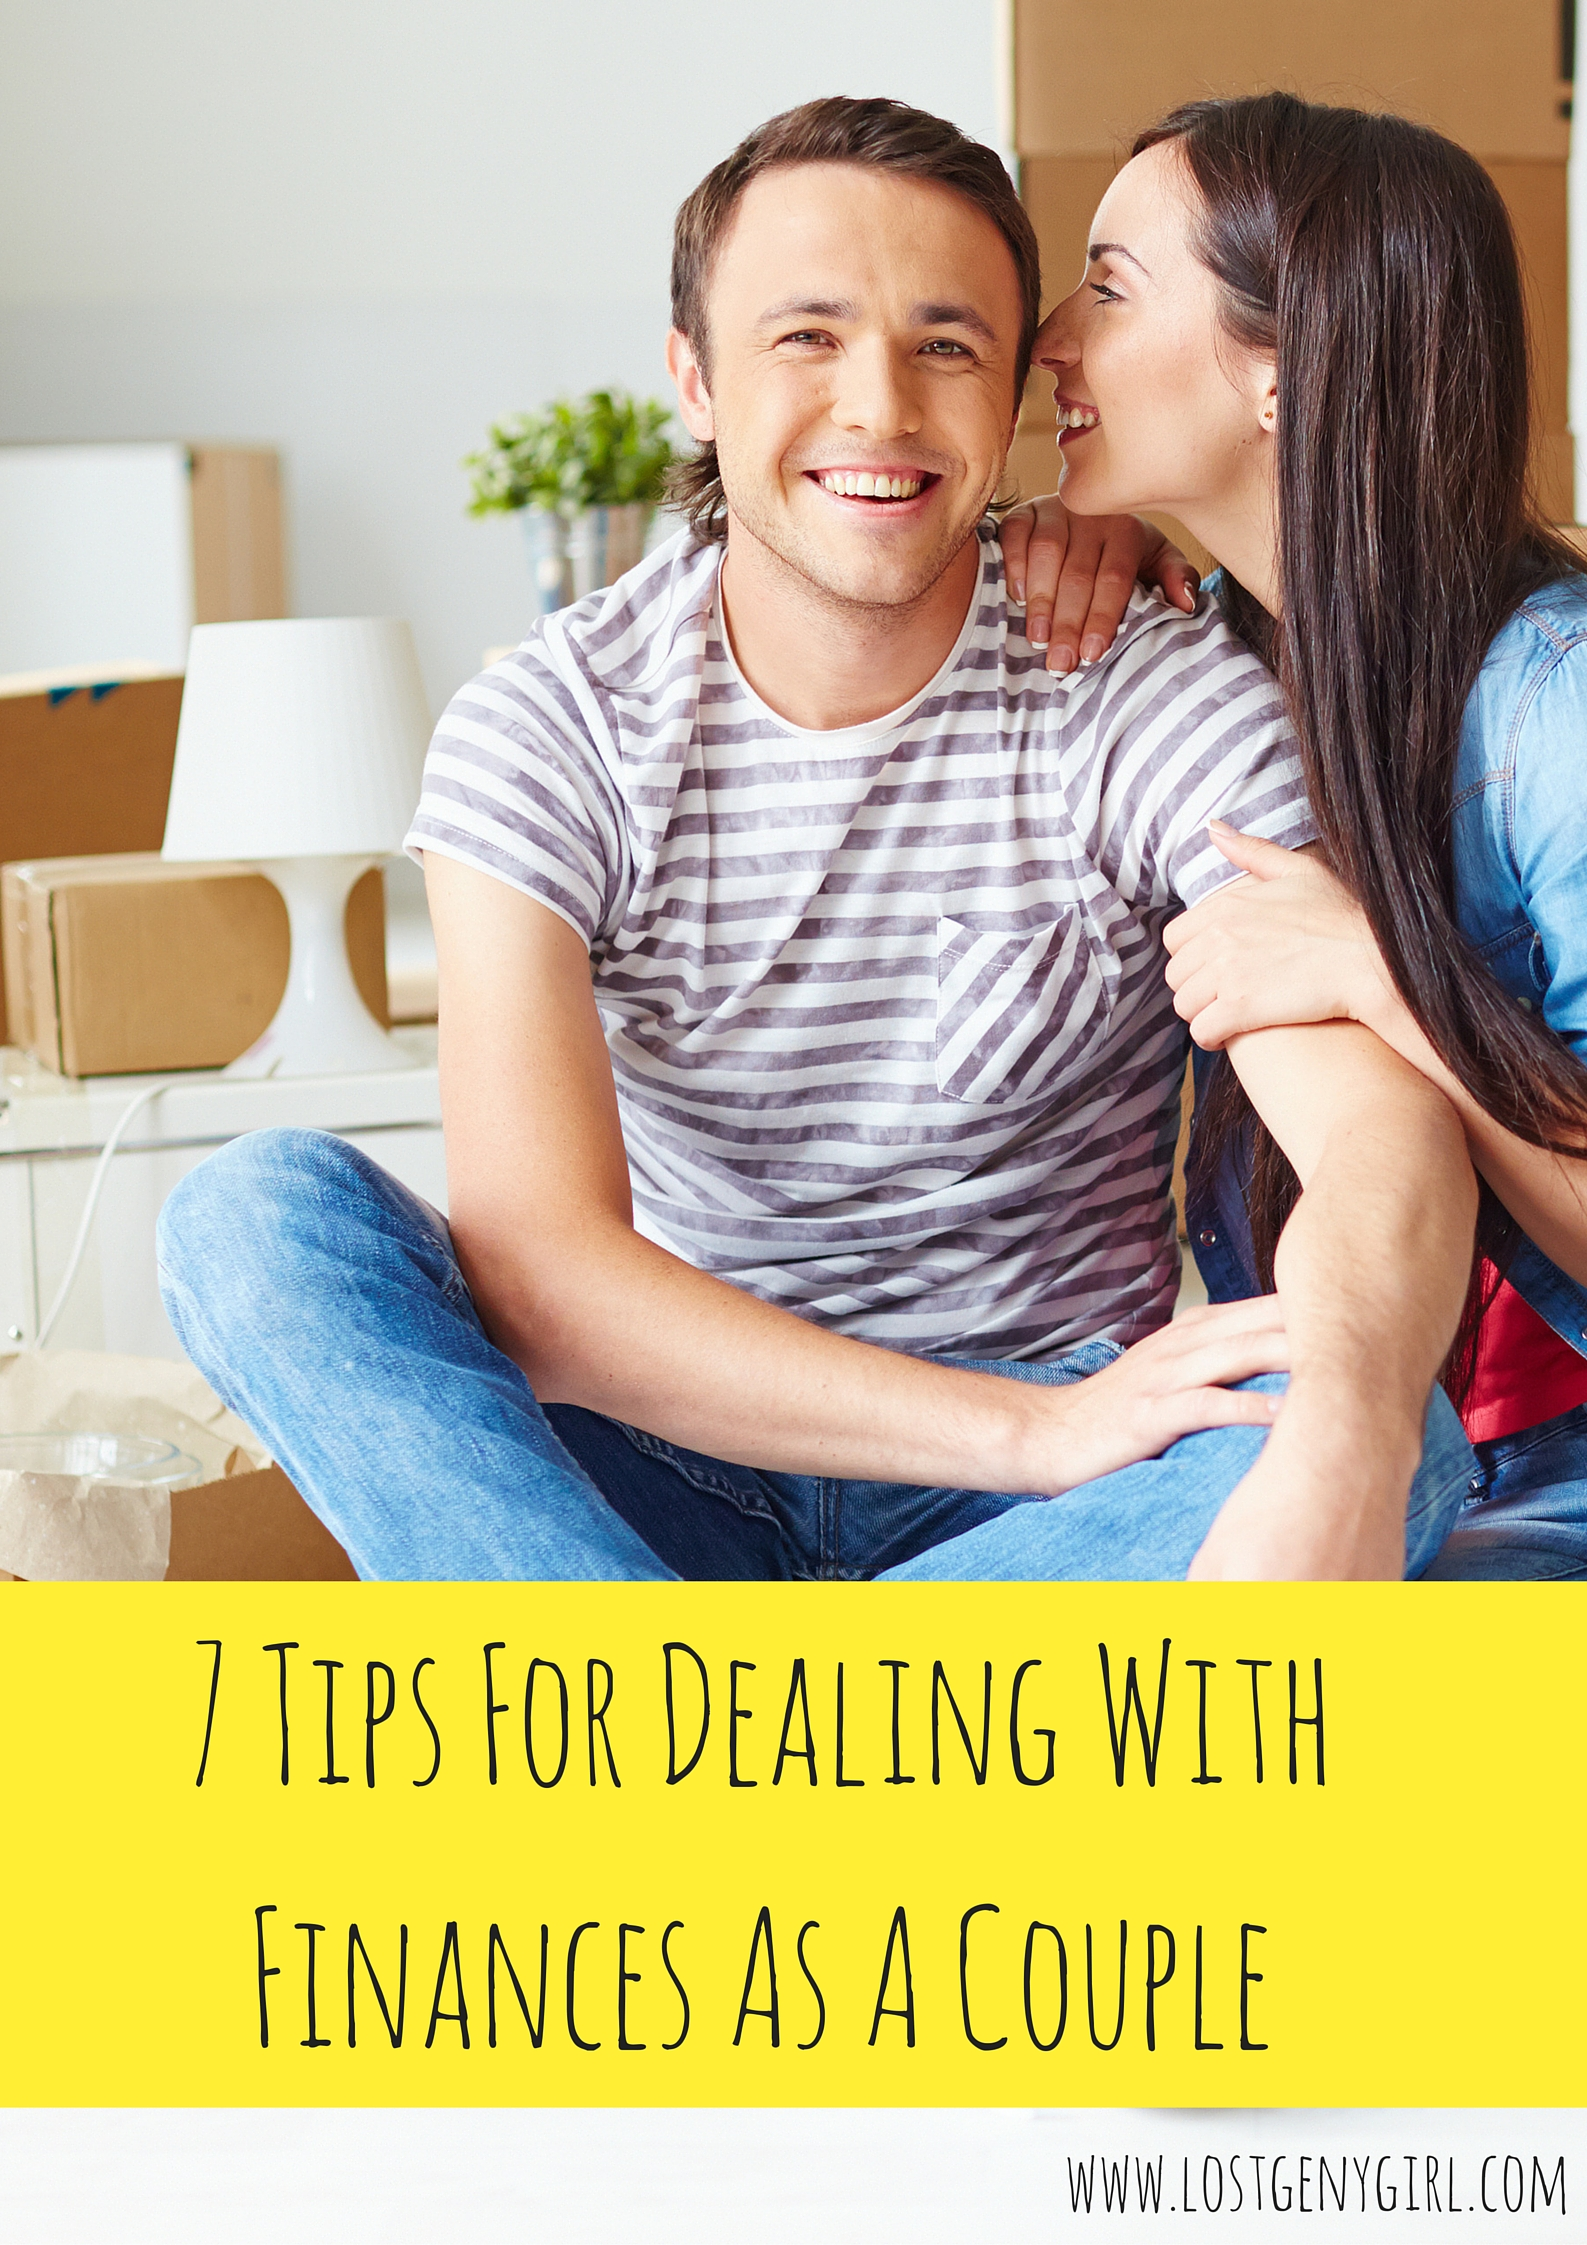 7 Tips For Dealing With Finances As A Couple